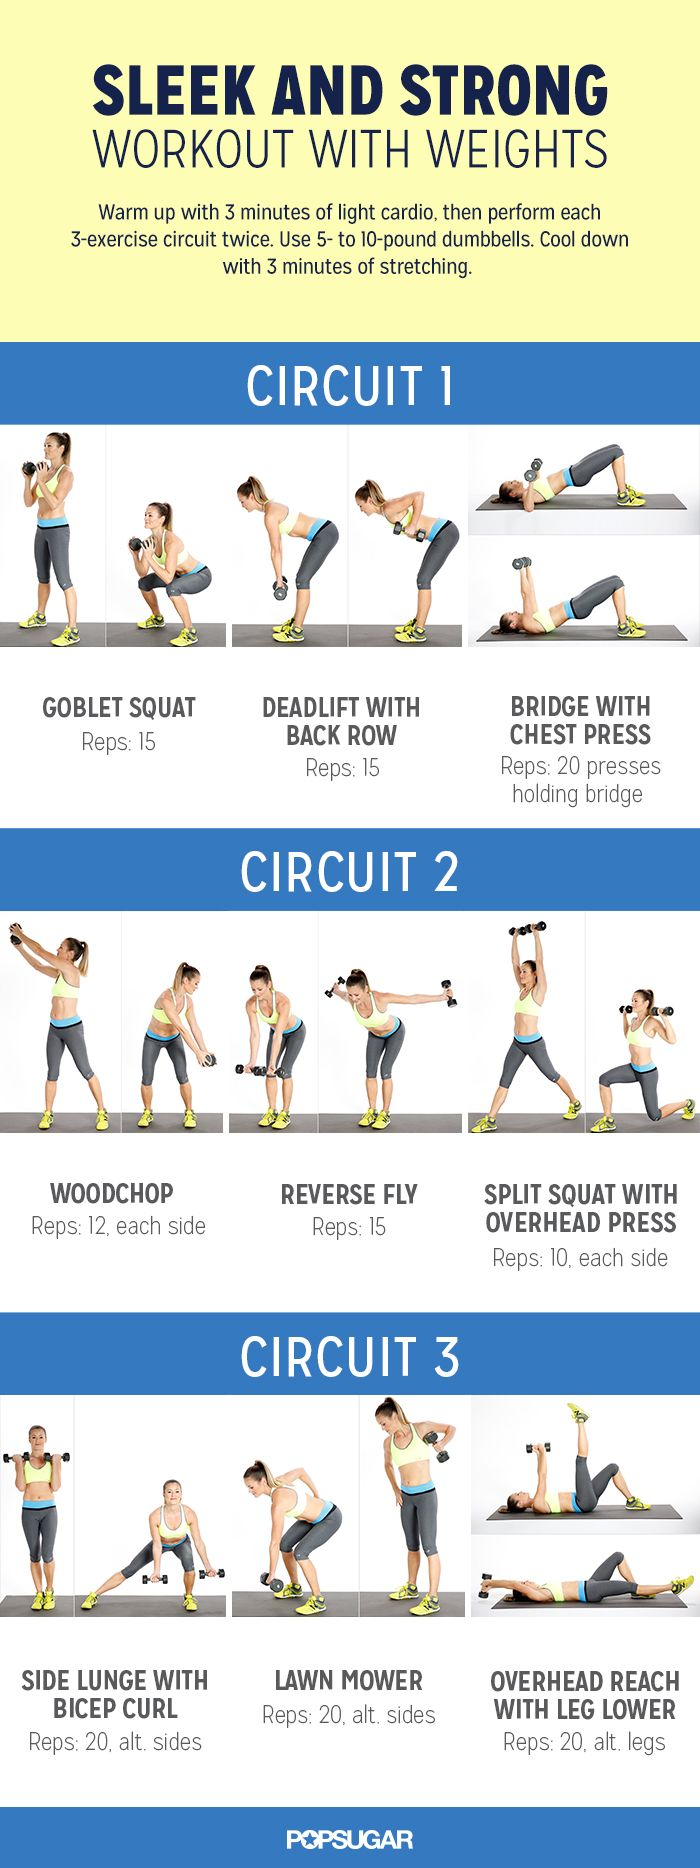 The circuit workout you need to get strong, sleek, and toned. Print this out and do it while watching TV!